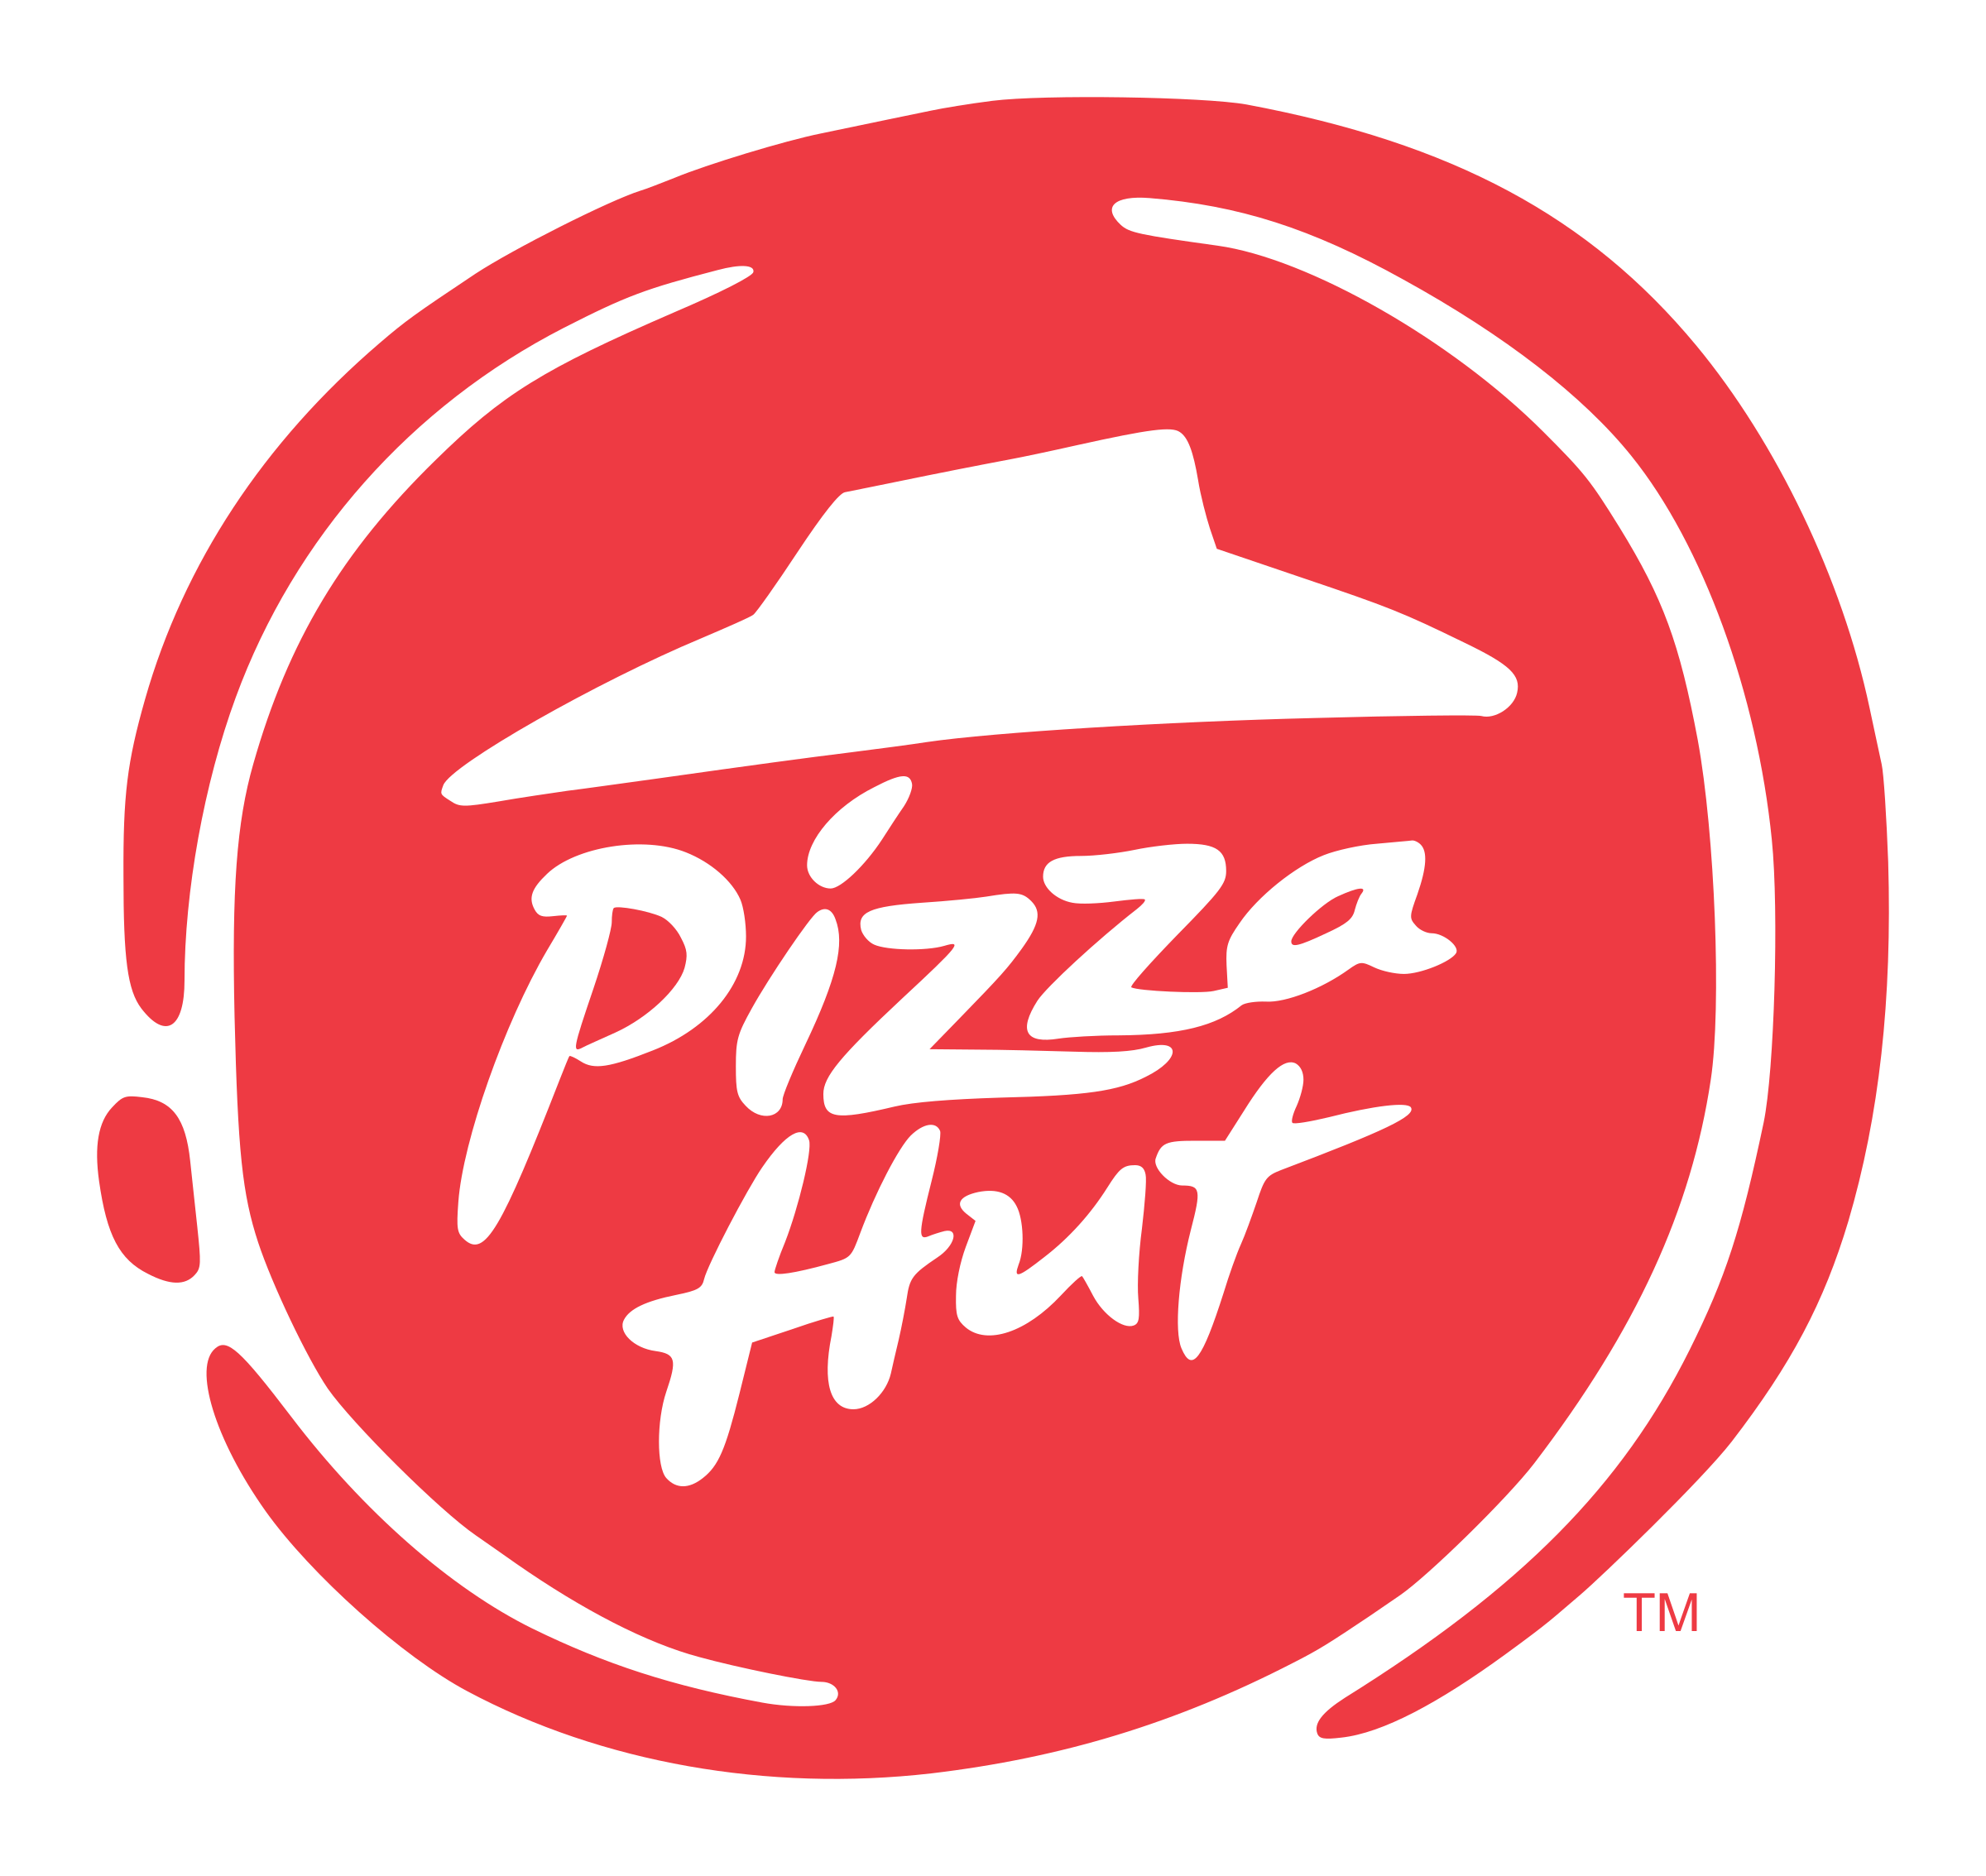 pizza-hut-logo-png-transparent.png